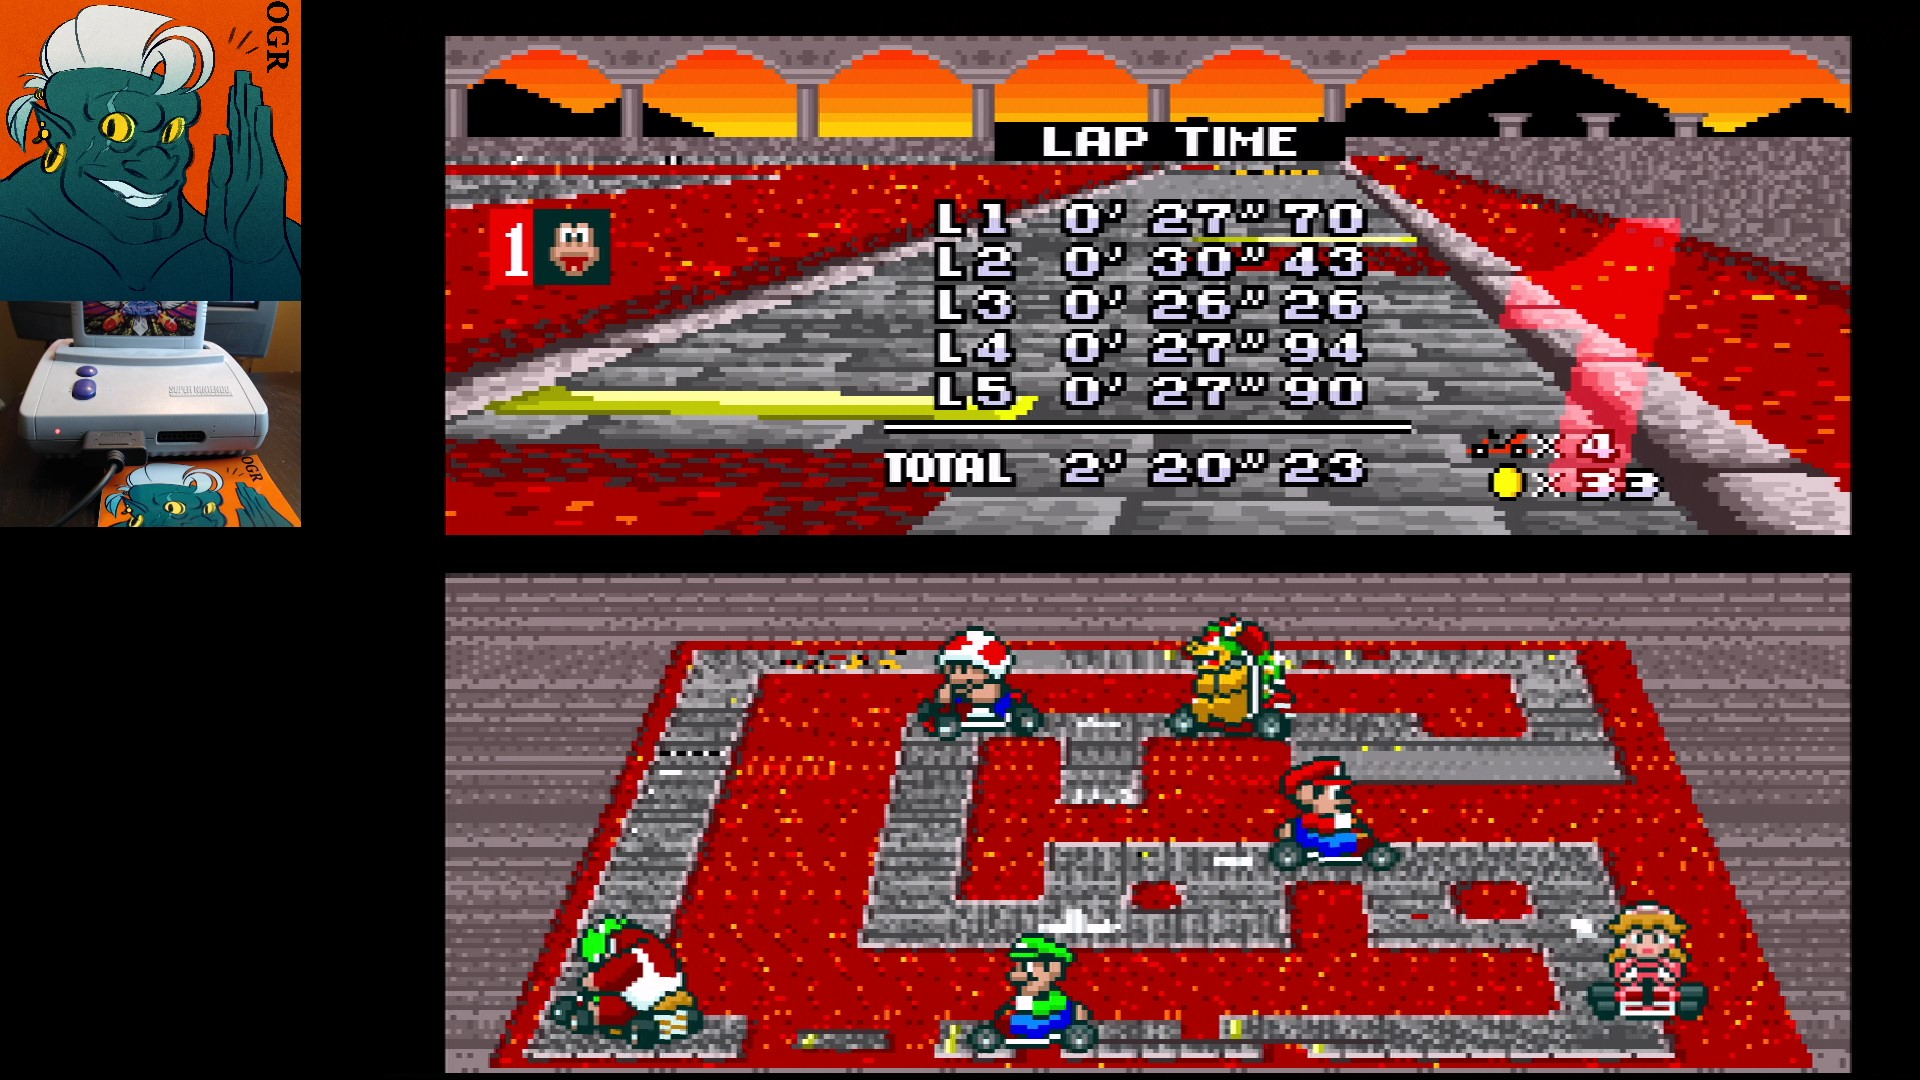 Super Mario Kart: Bowser Castle 2 [50cc] [Lap Time] time of 0:00:26.26